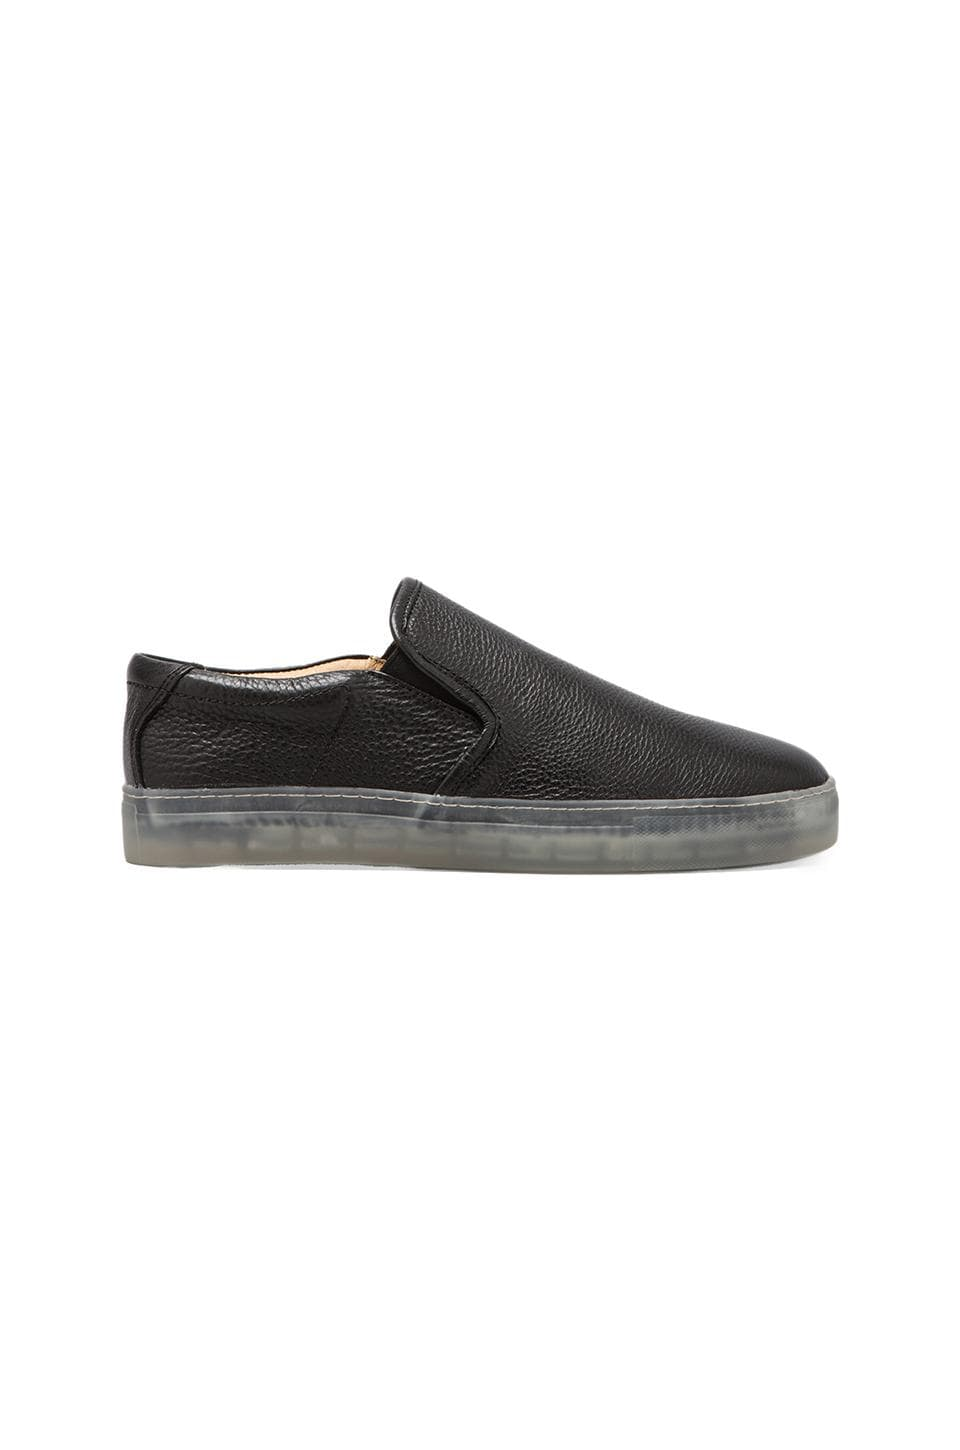 J.D. FISK Cael Slip-On in Black